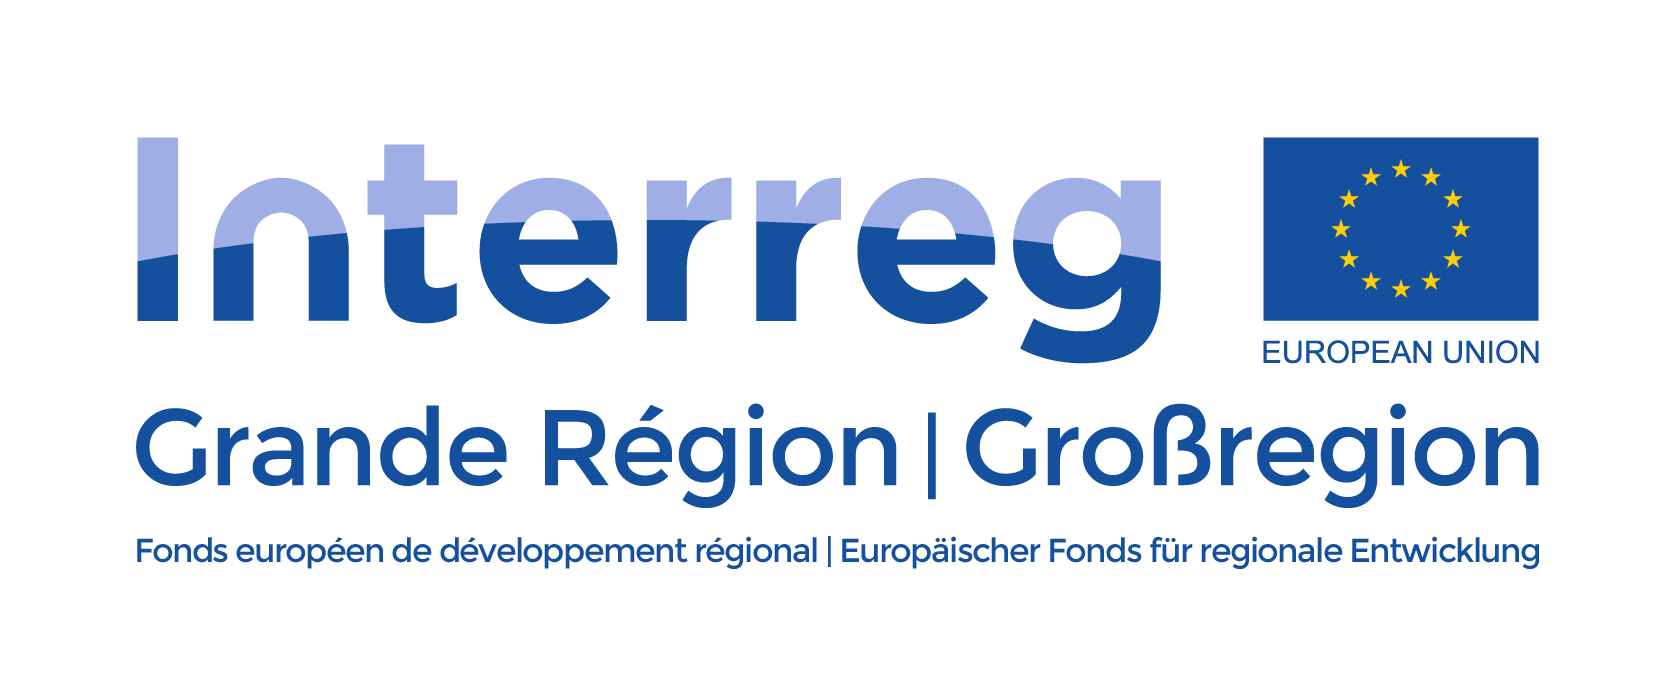 Interreg grande region fr de fund rgb